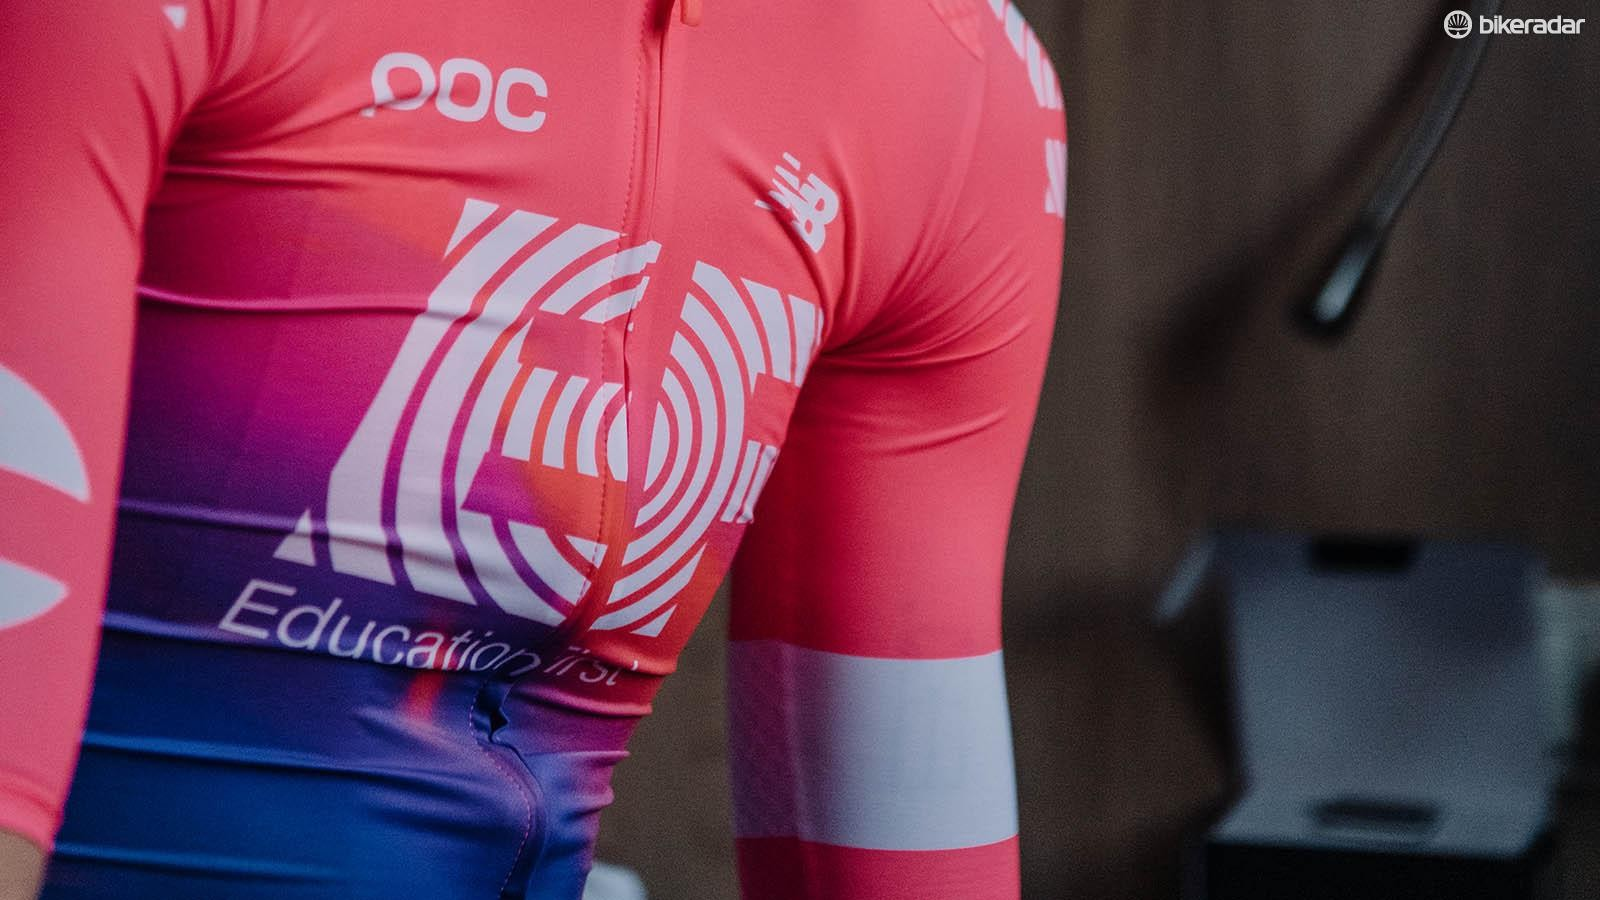 The jersey features a pink and blue fade design with contrasting white logos